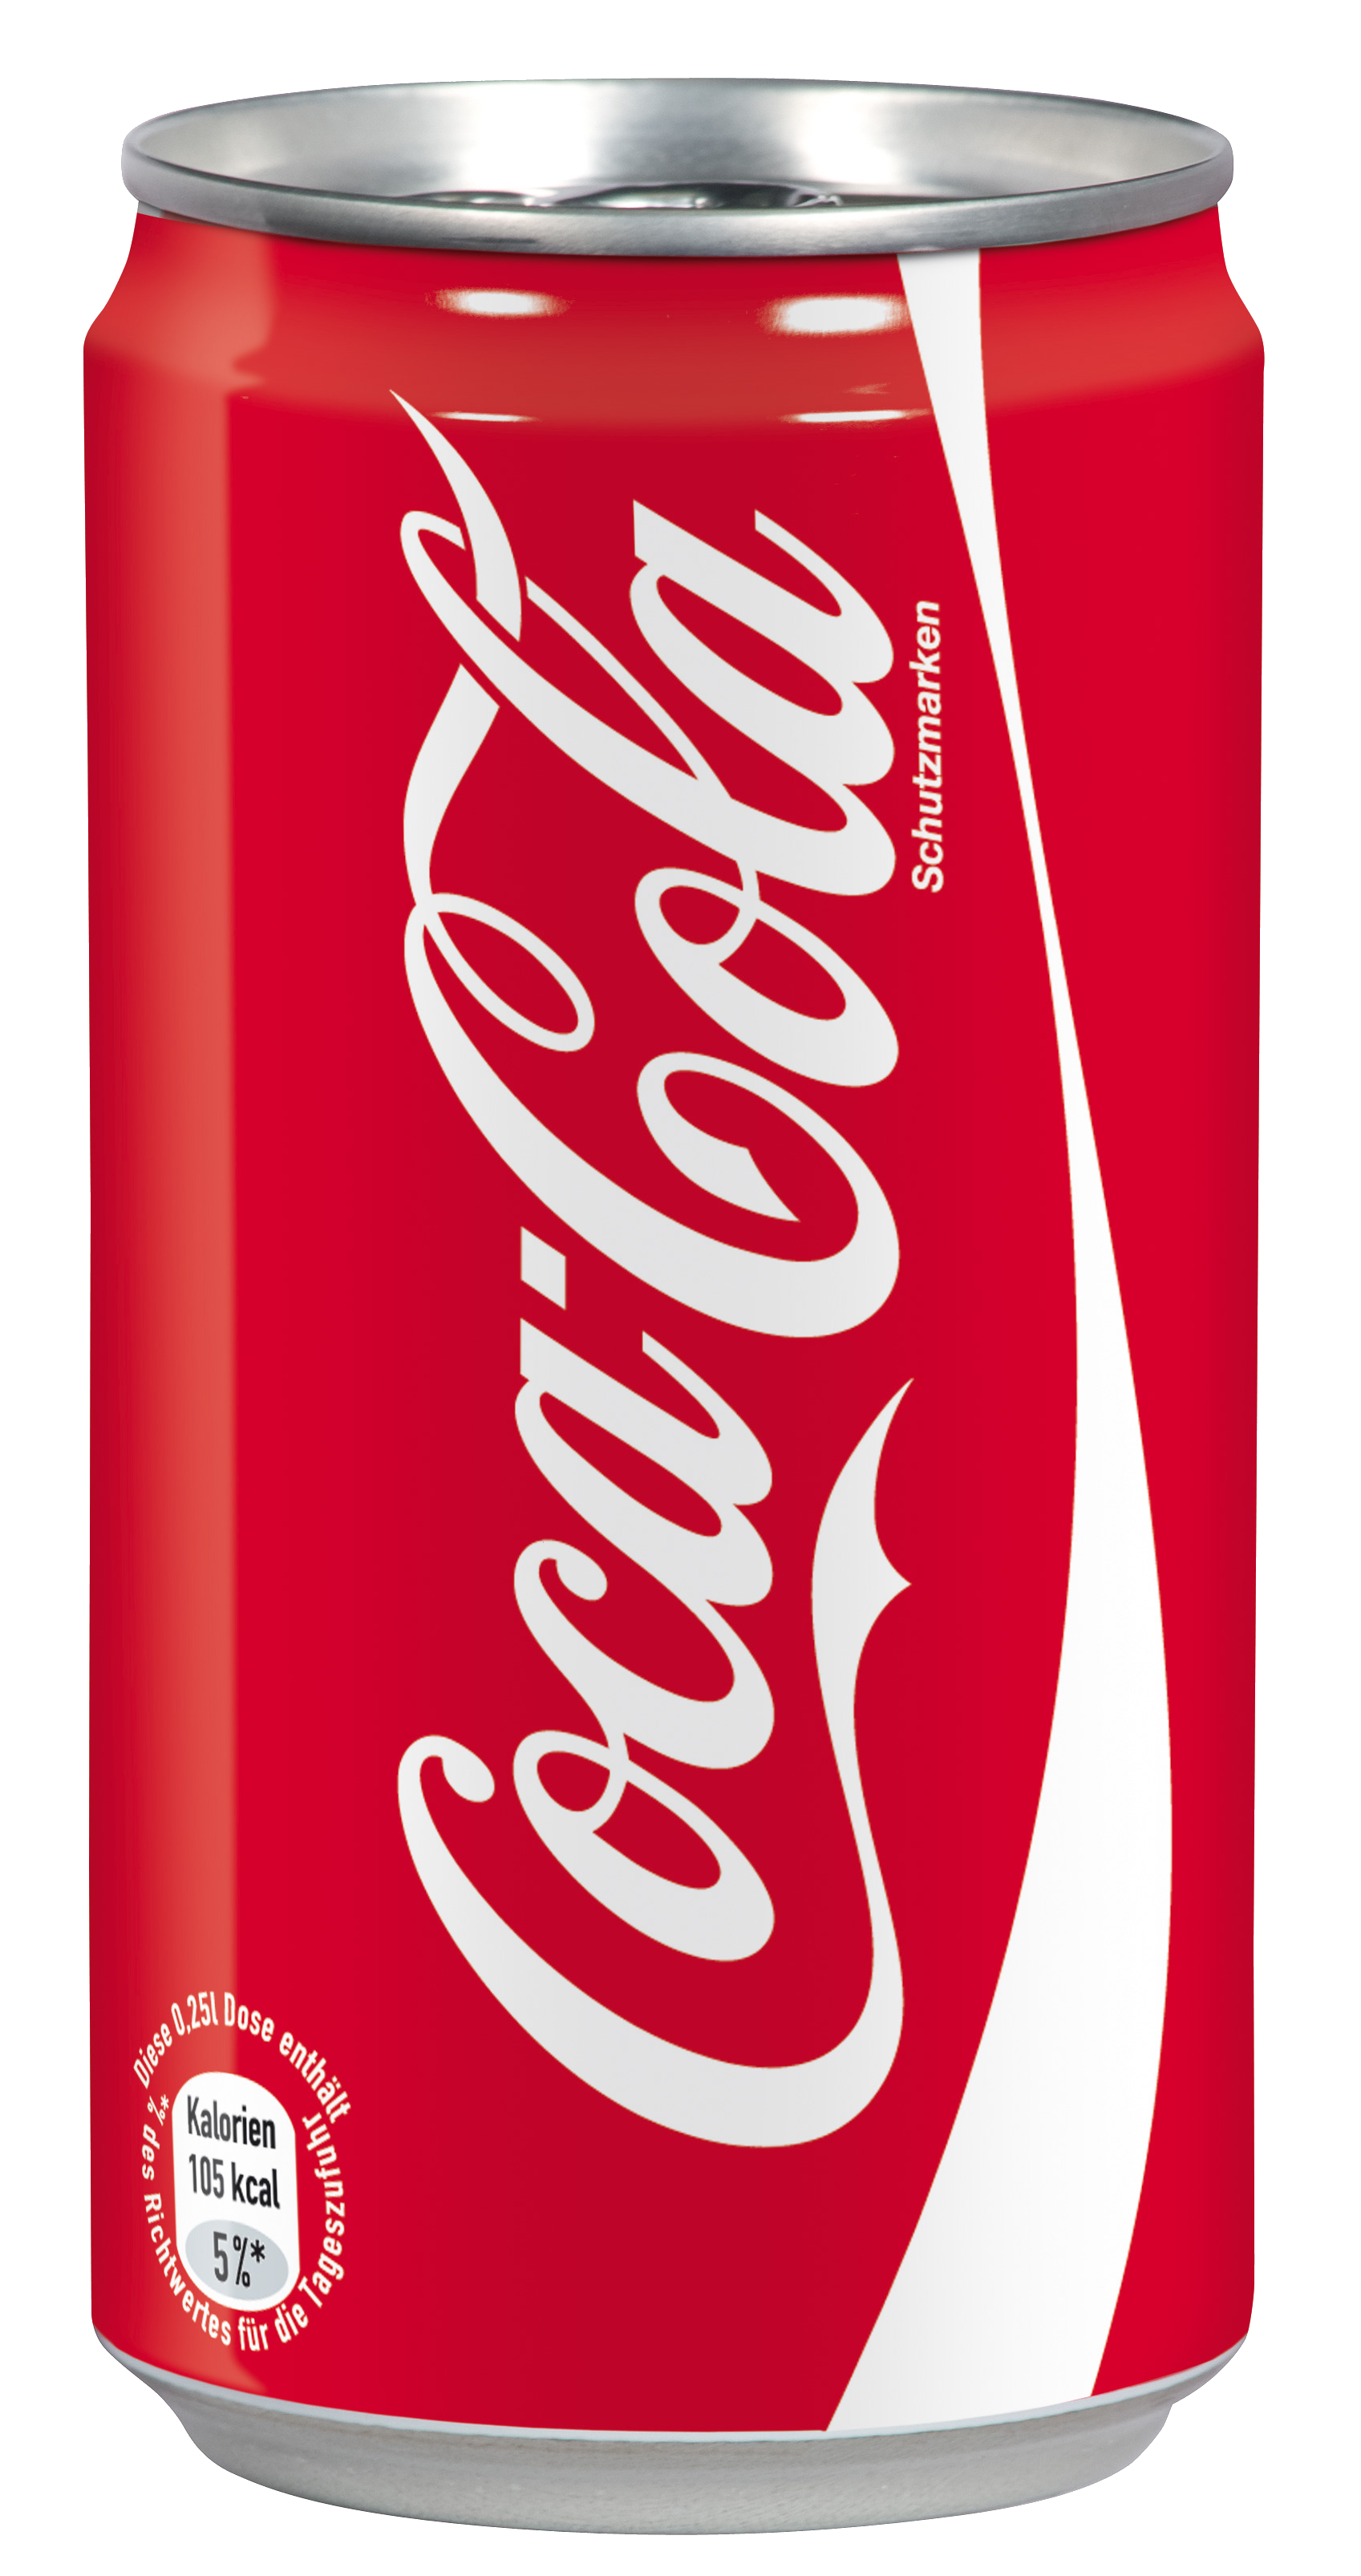 Coca Cola bottle PNG image download free - Coca Cola PNG